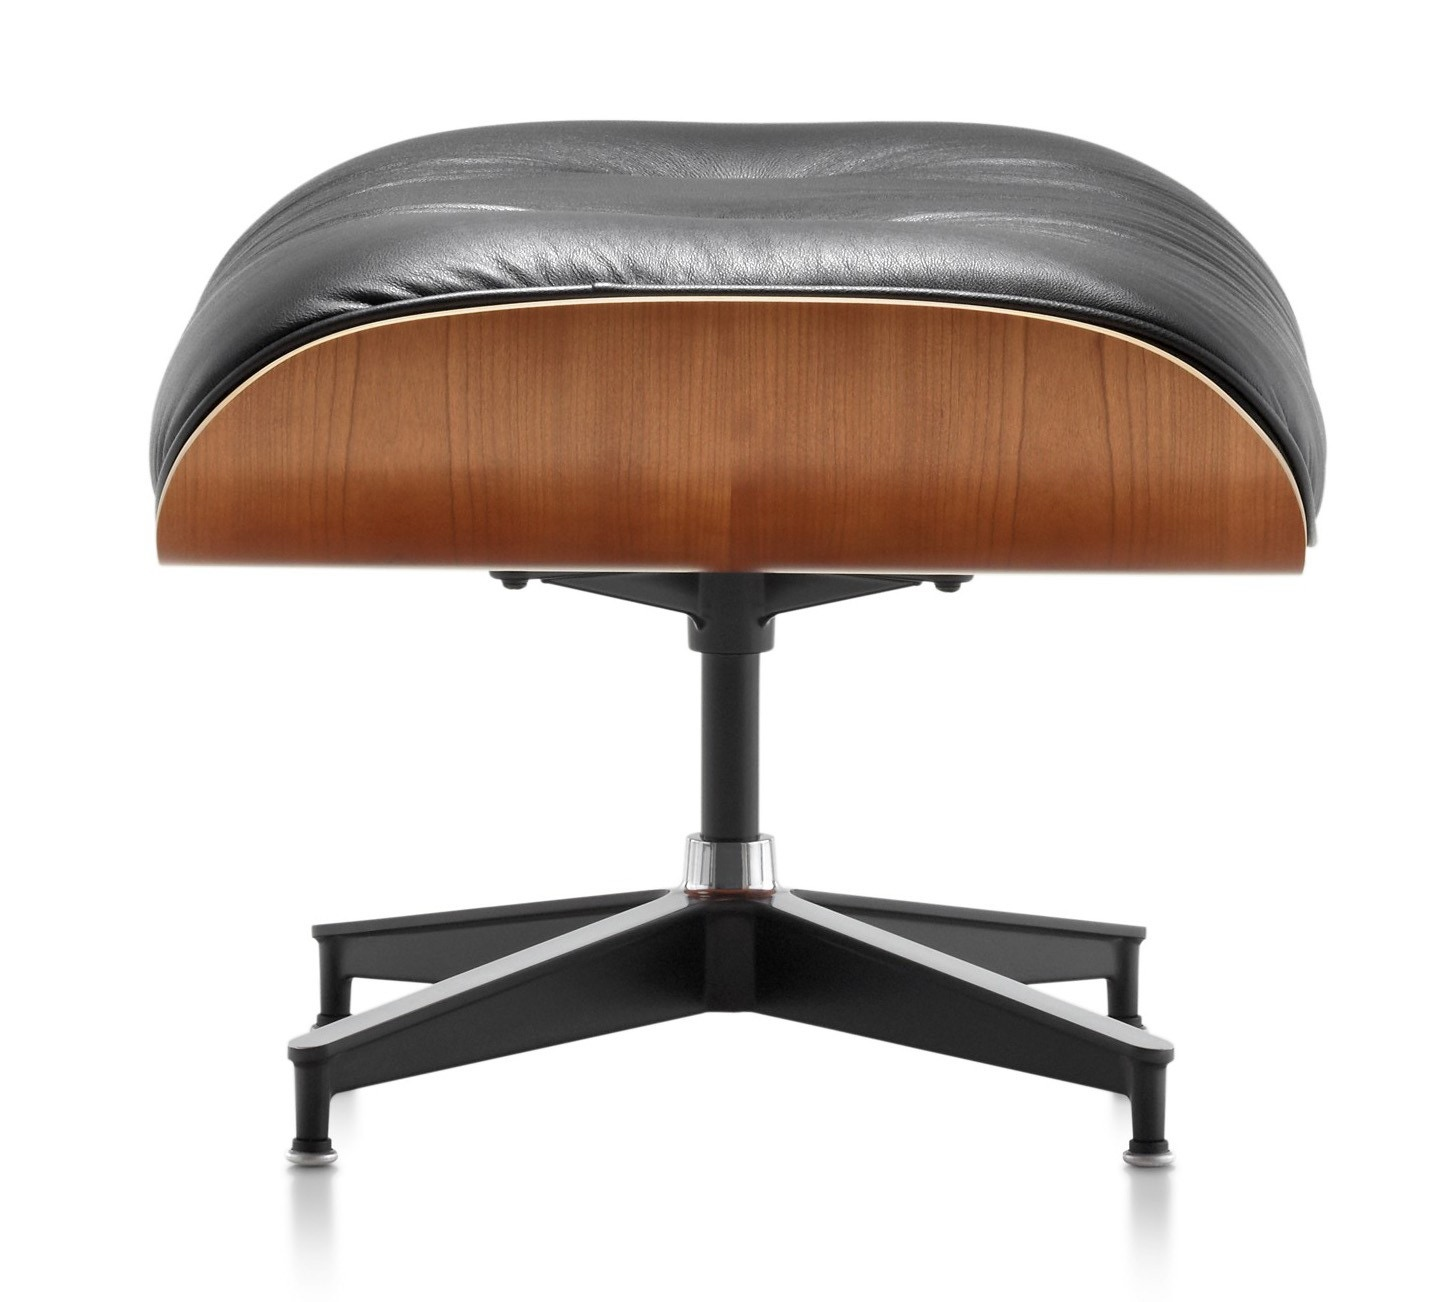 Herman miller eames lounge ottoman gr shop canada - Herman miller lounge chair and ottoman ...